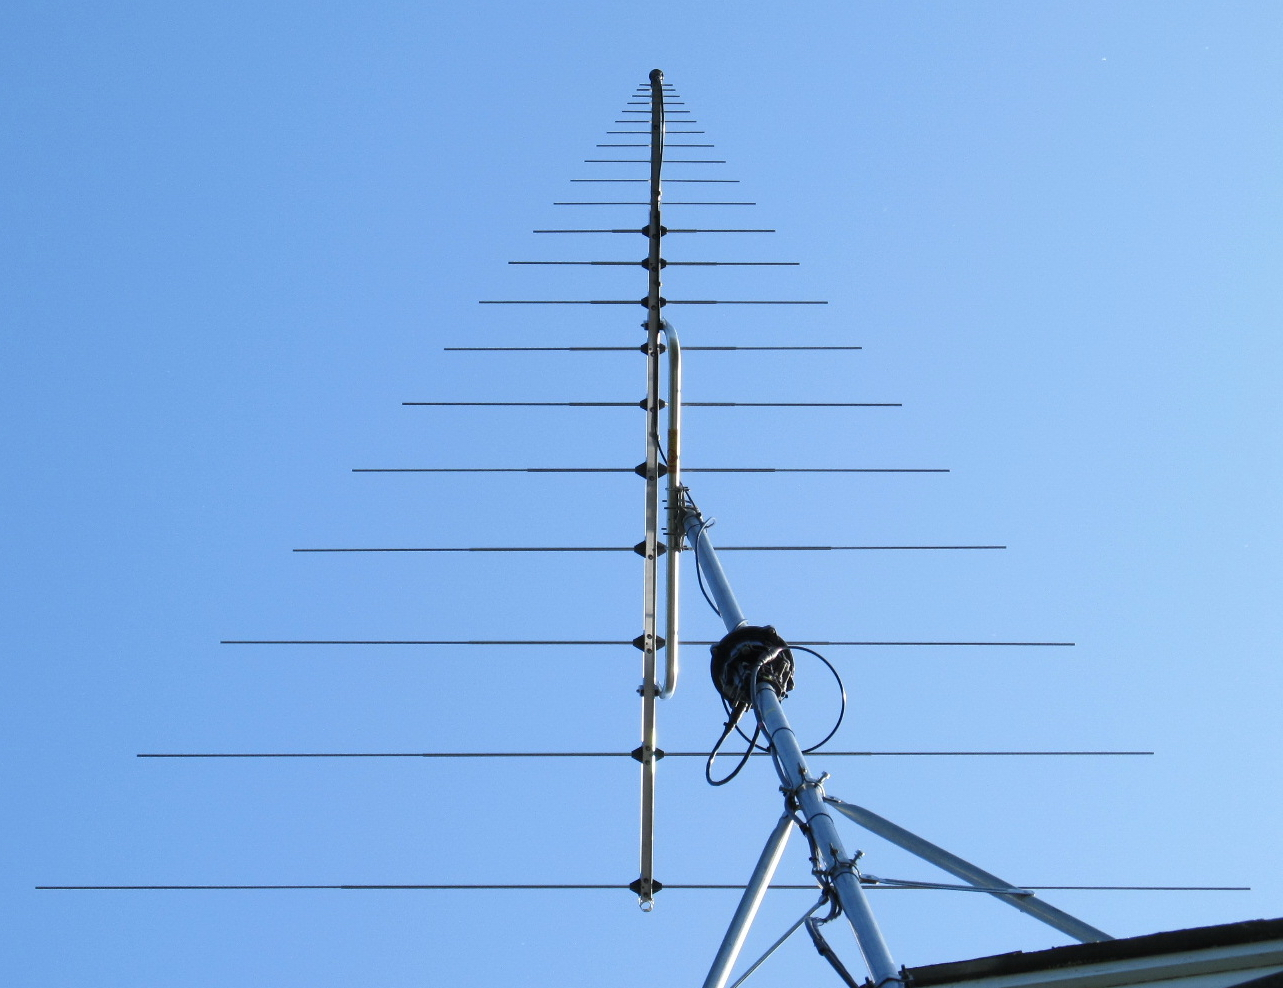 Create CLP-5130-1N VHF/UHF Log-Periodic Antennas – VHF/UHF, 21 Elements, 50-1300 MHz